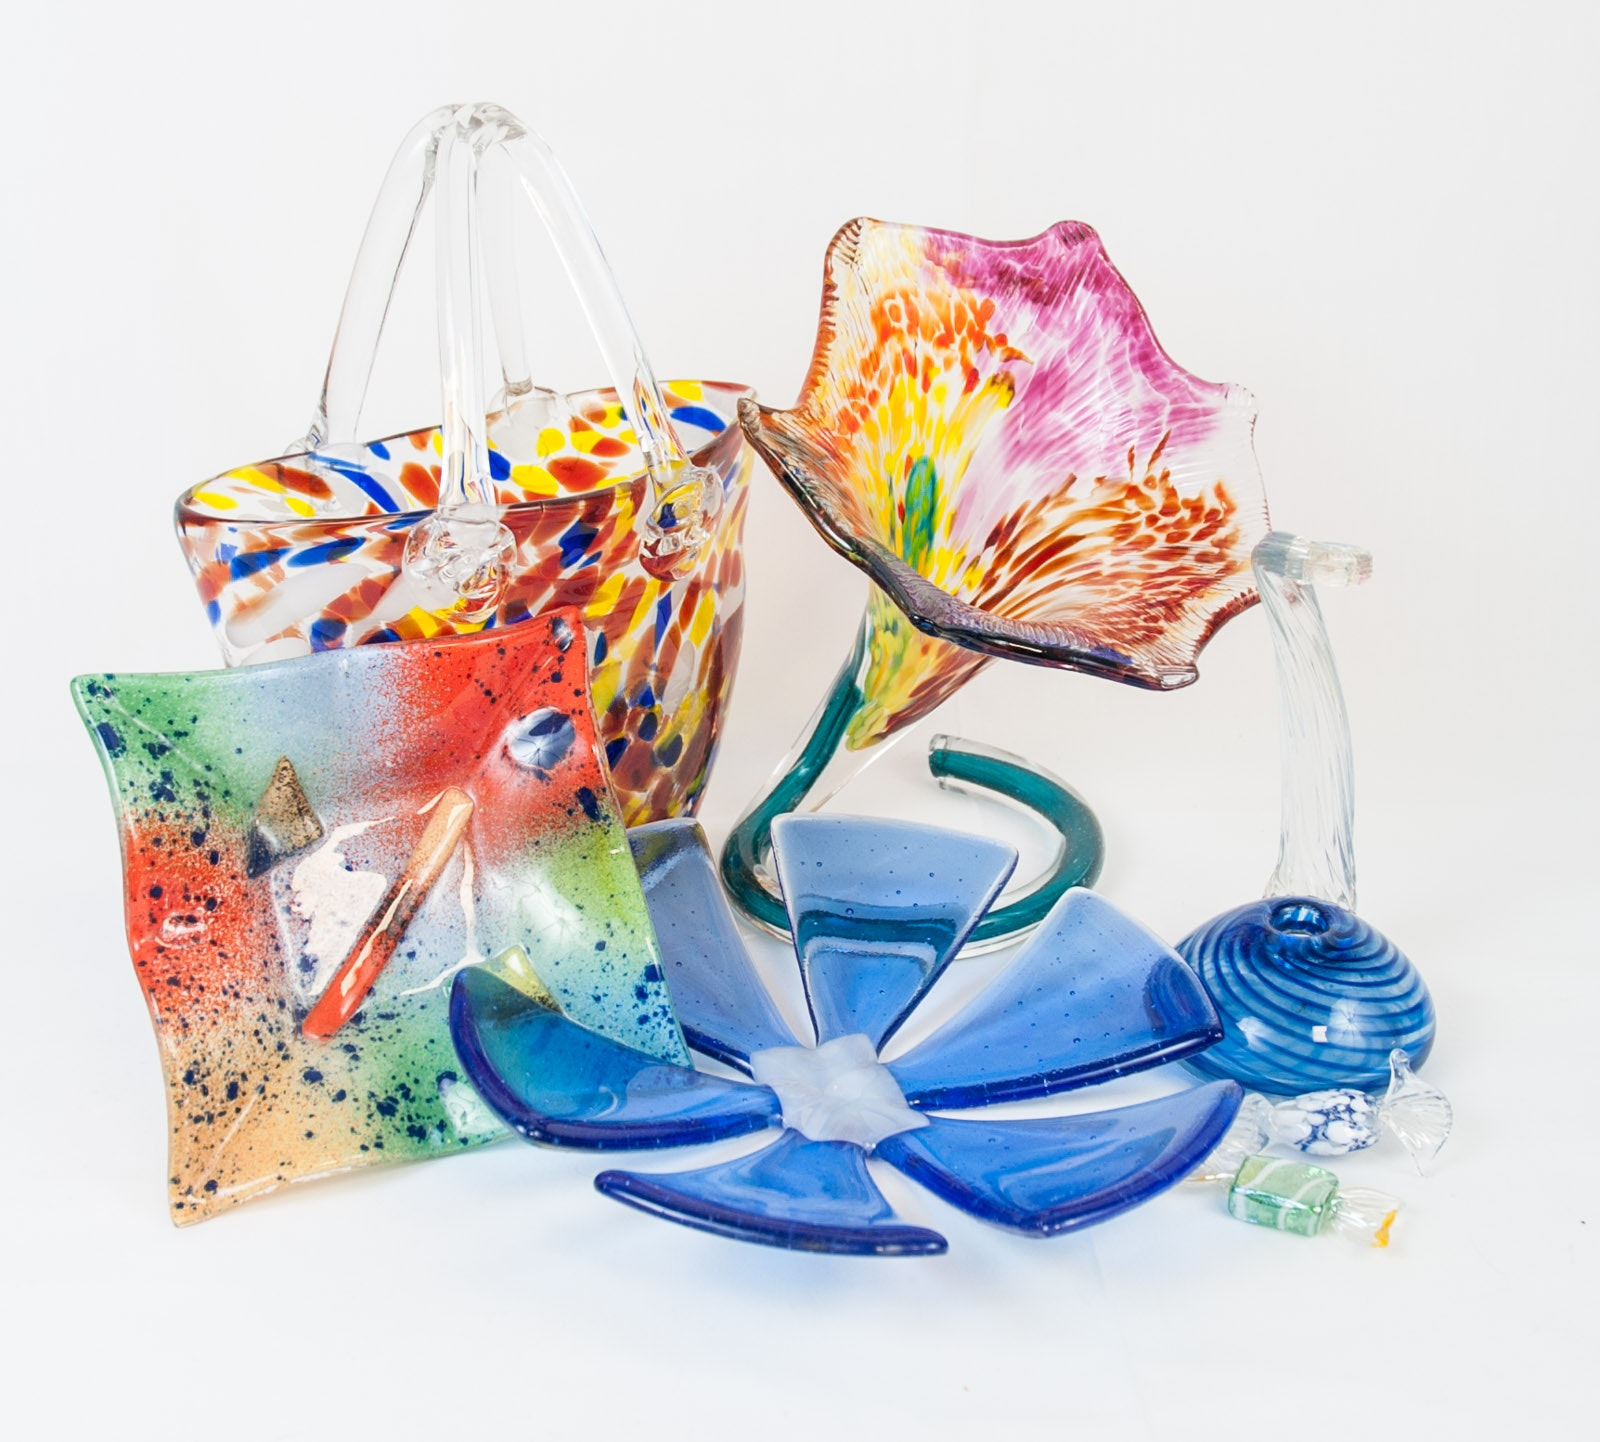 Collection of Art Glass Decor